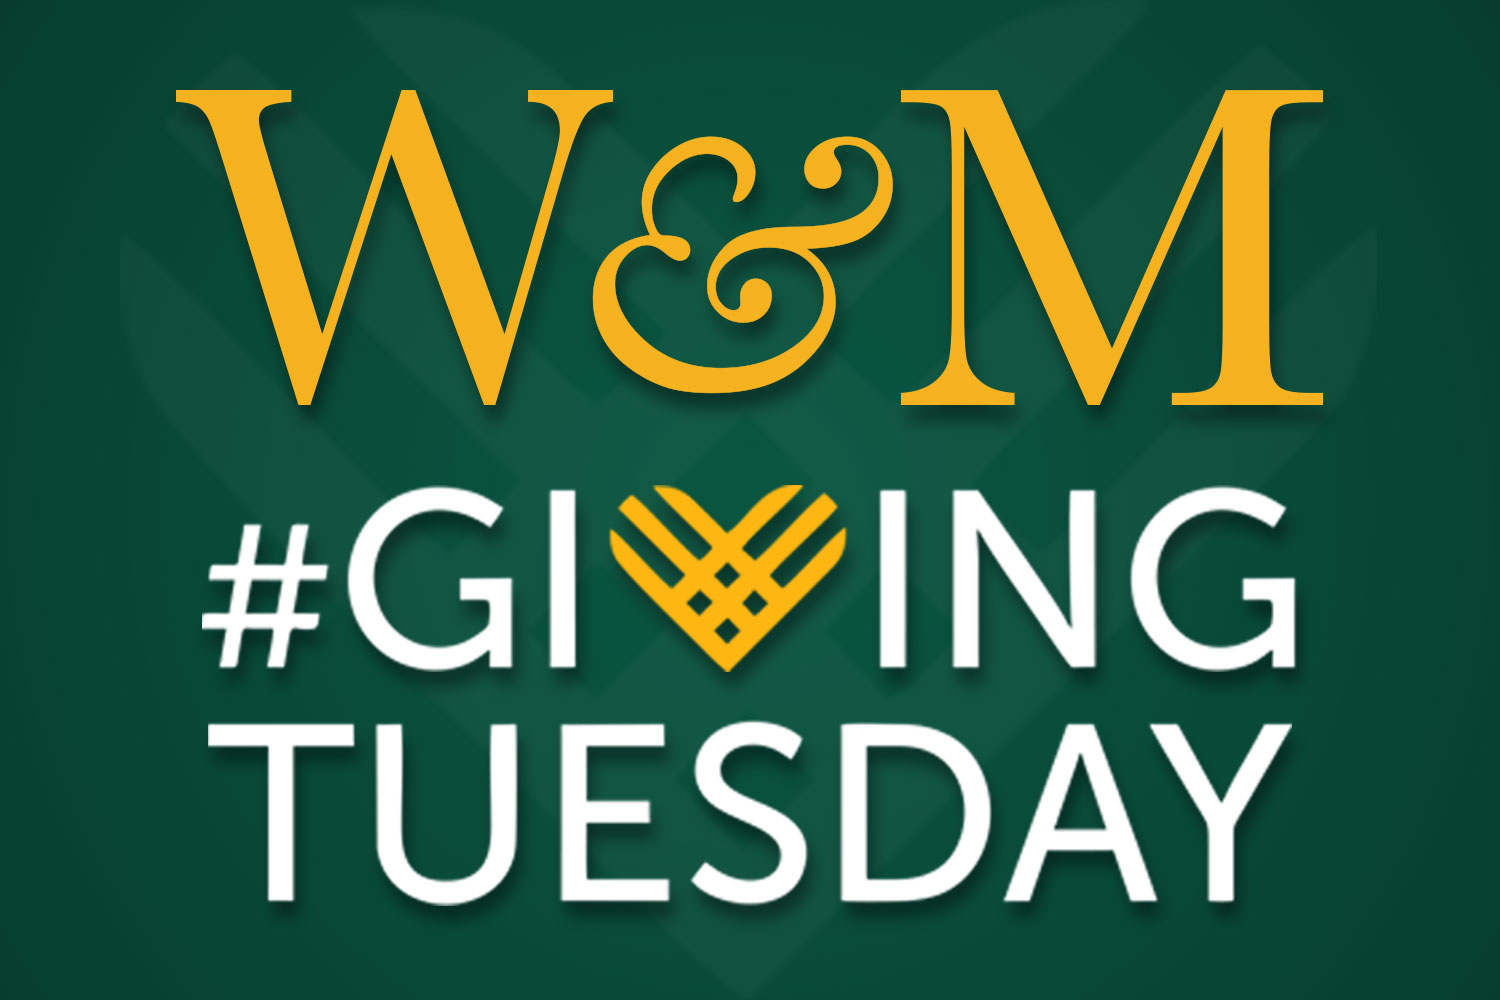 givingtuesday-1.jpg